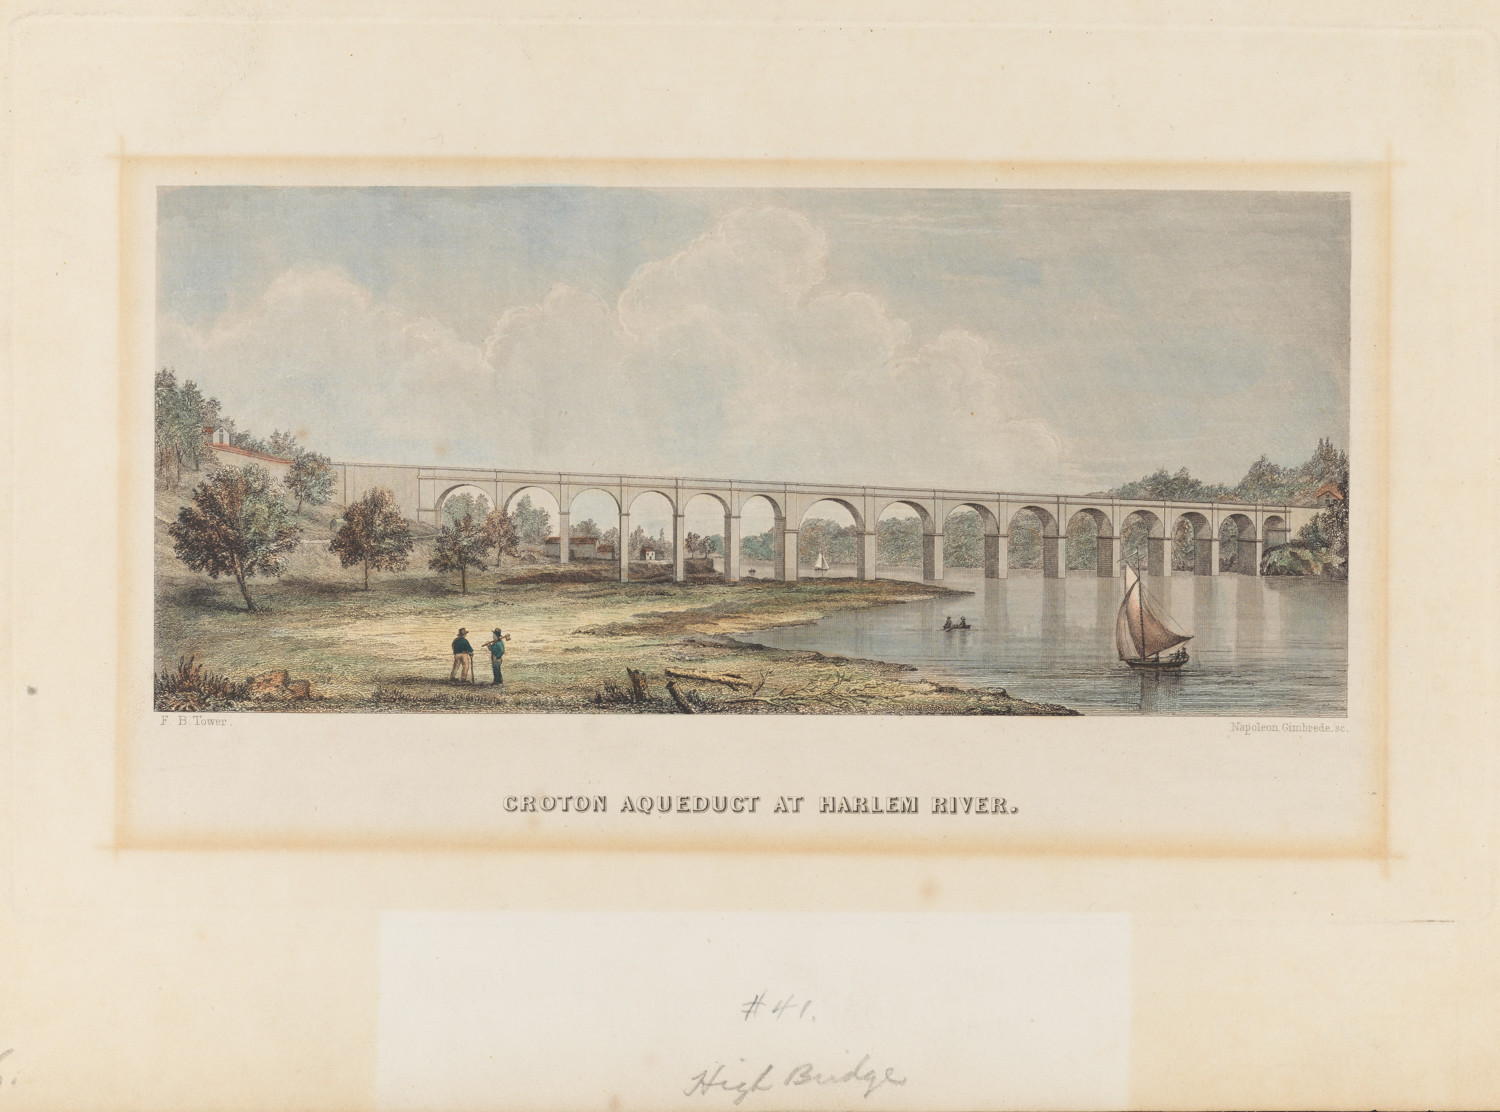 A portion of the original Croton Aqueduct can be seen at High Bridge, which connects the Bronx at West 170th Street and University Avenue and Manhattan at West 172nd Street and Amsterdam Avenue. The 41-mile structure brought fresh water to New York City residents beginning in 1842.